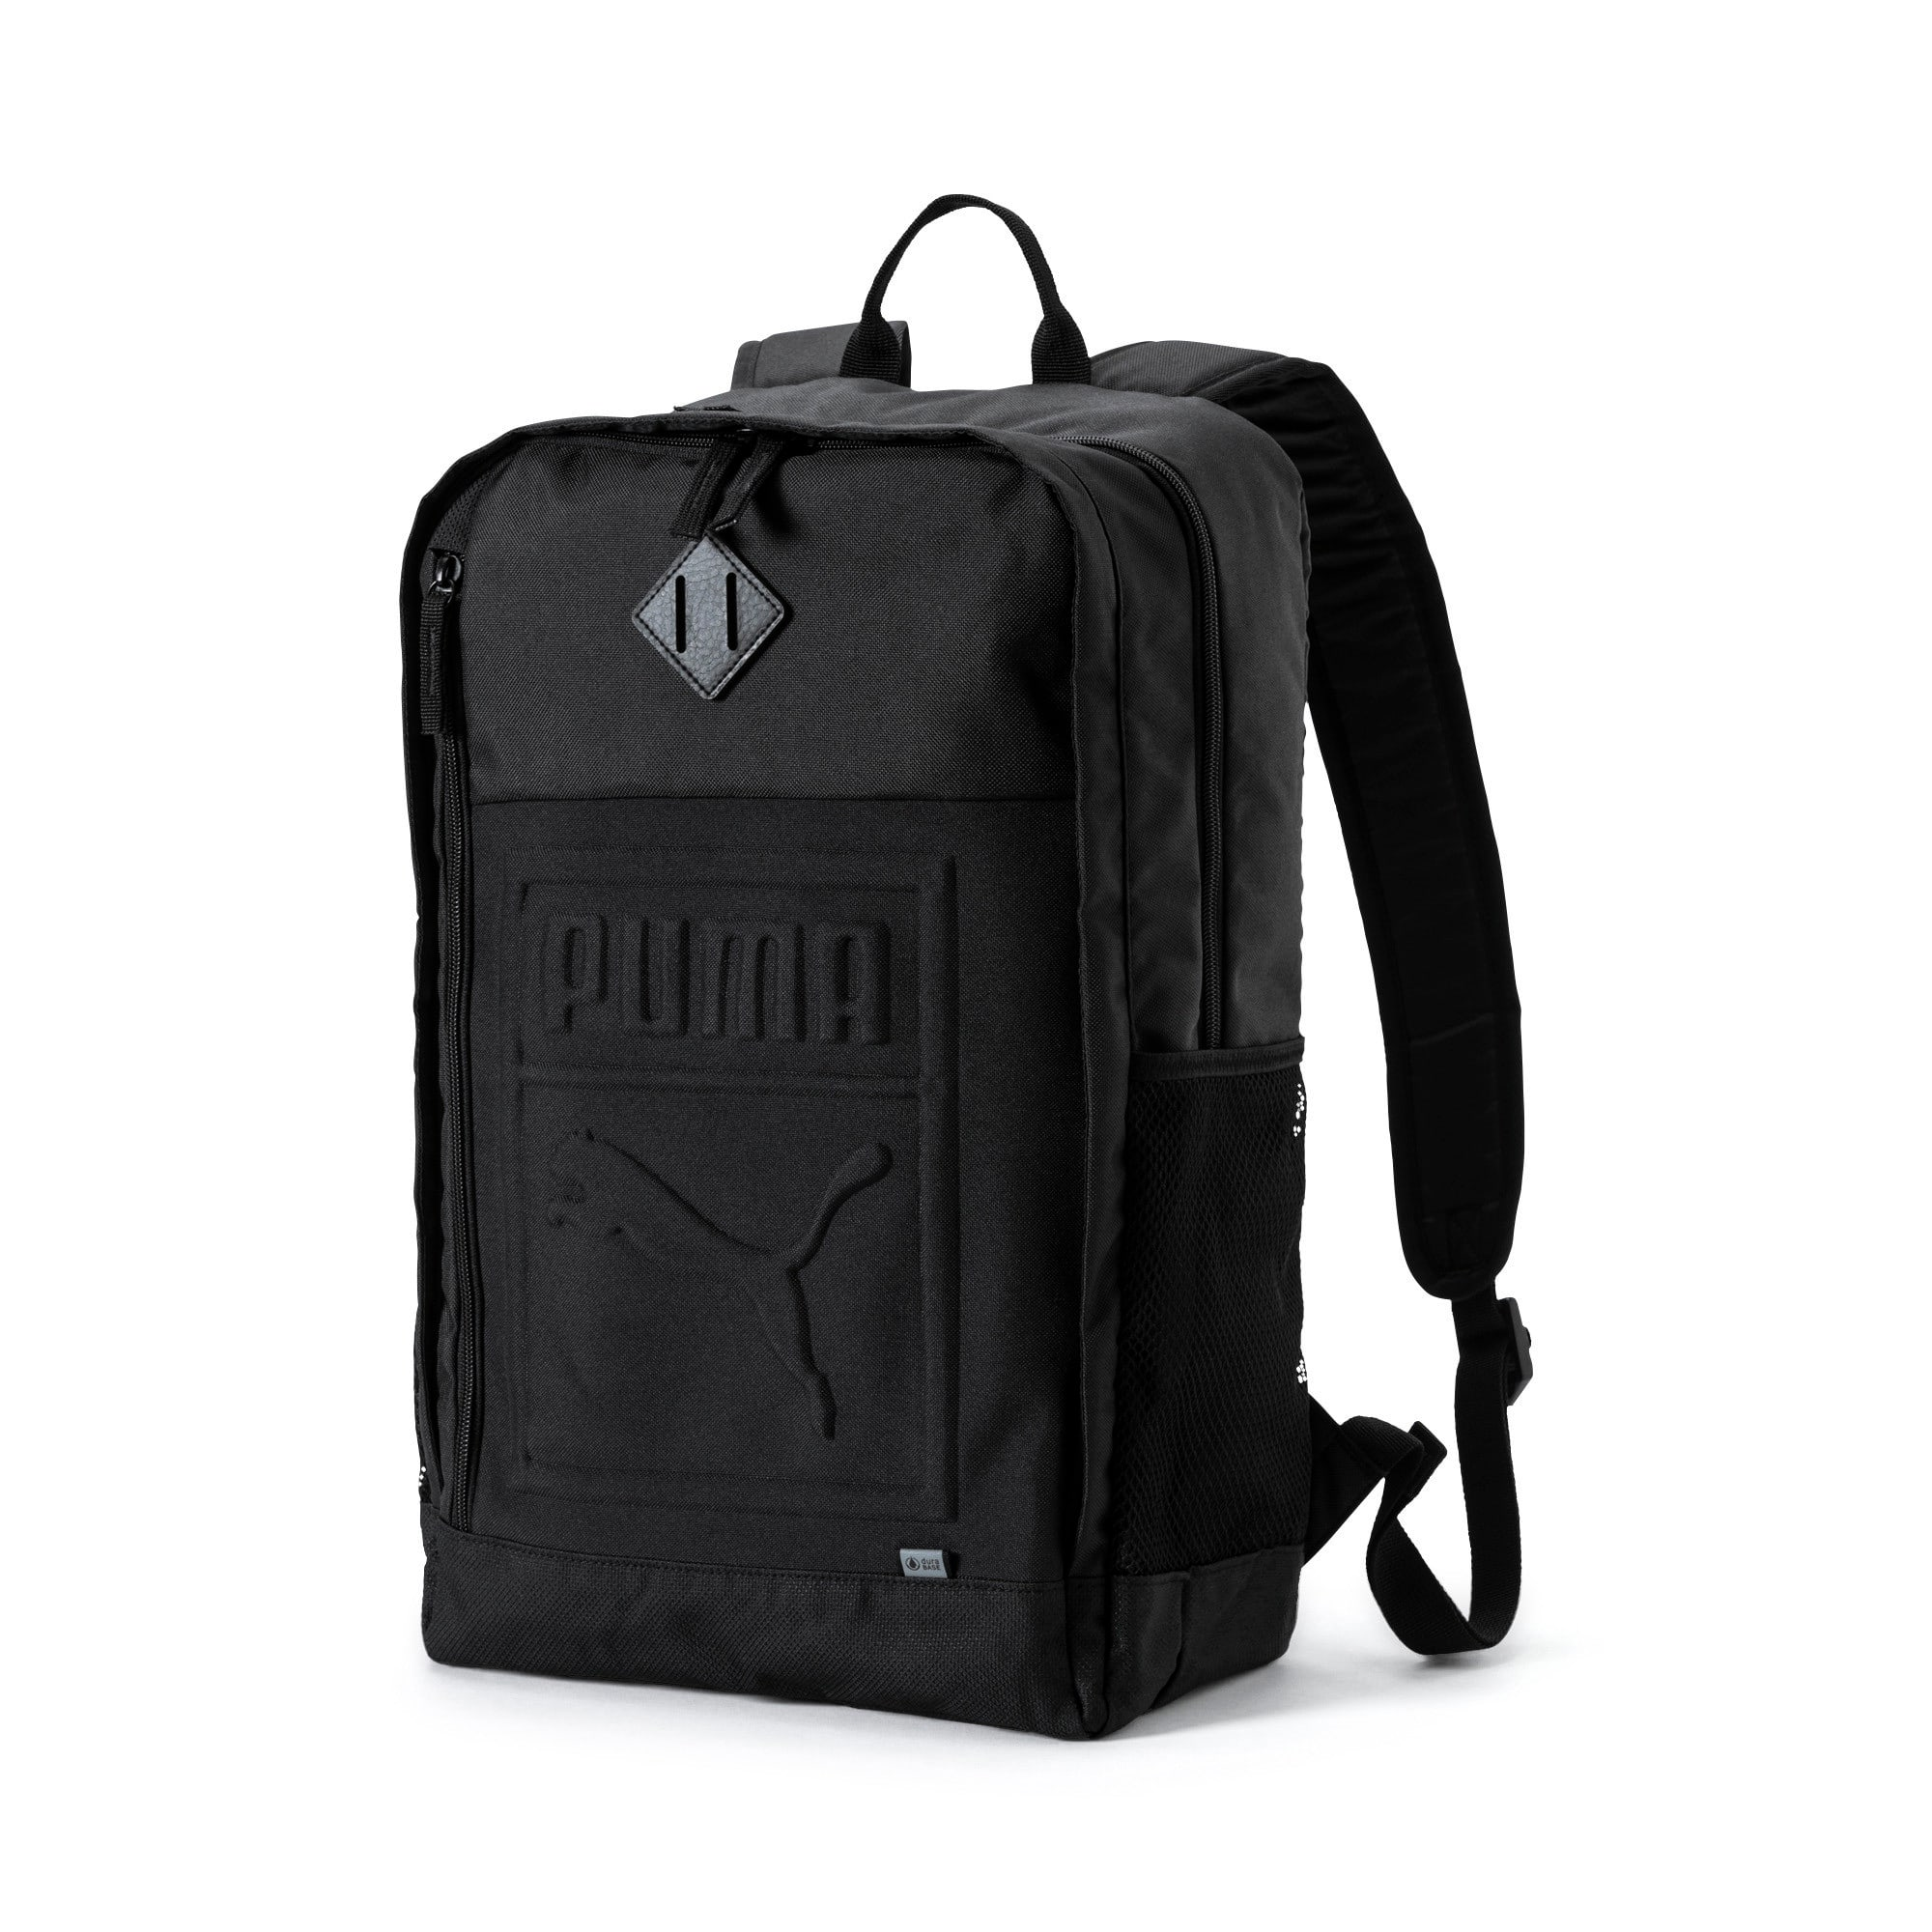 Thumbnail 1 of Square Backpack, Puma Black, medium